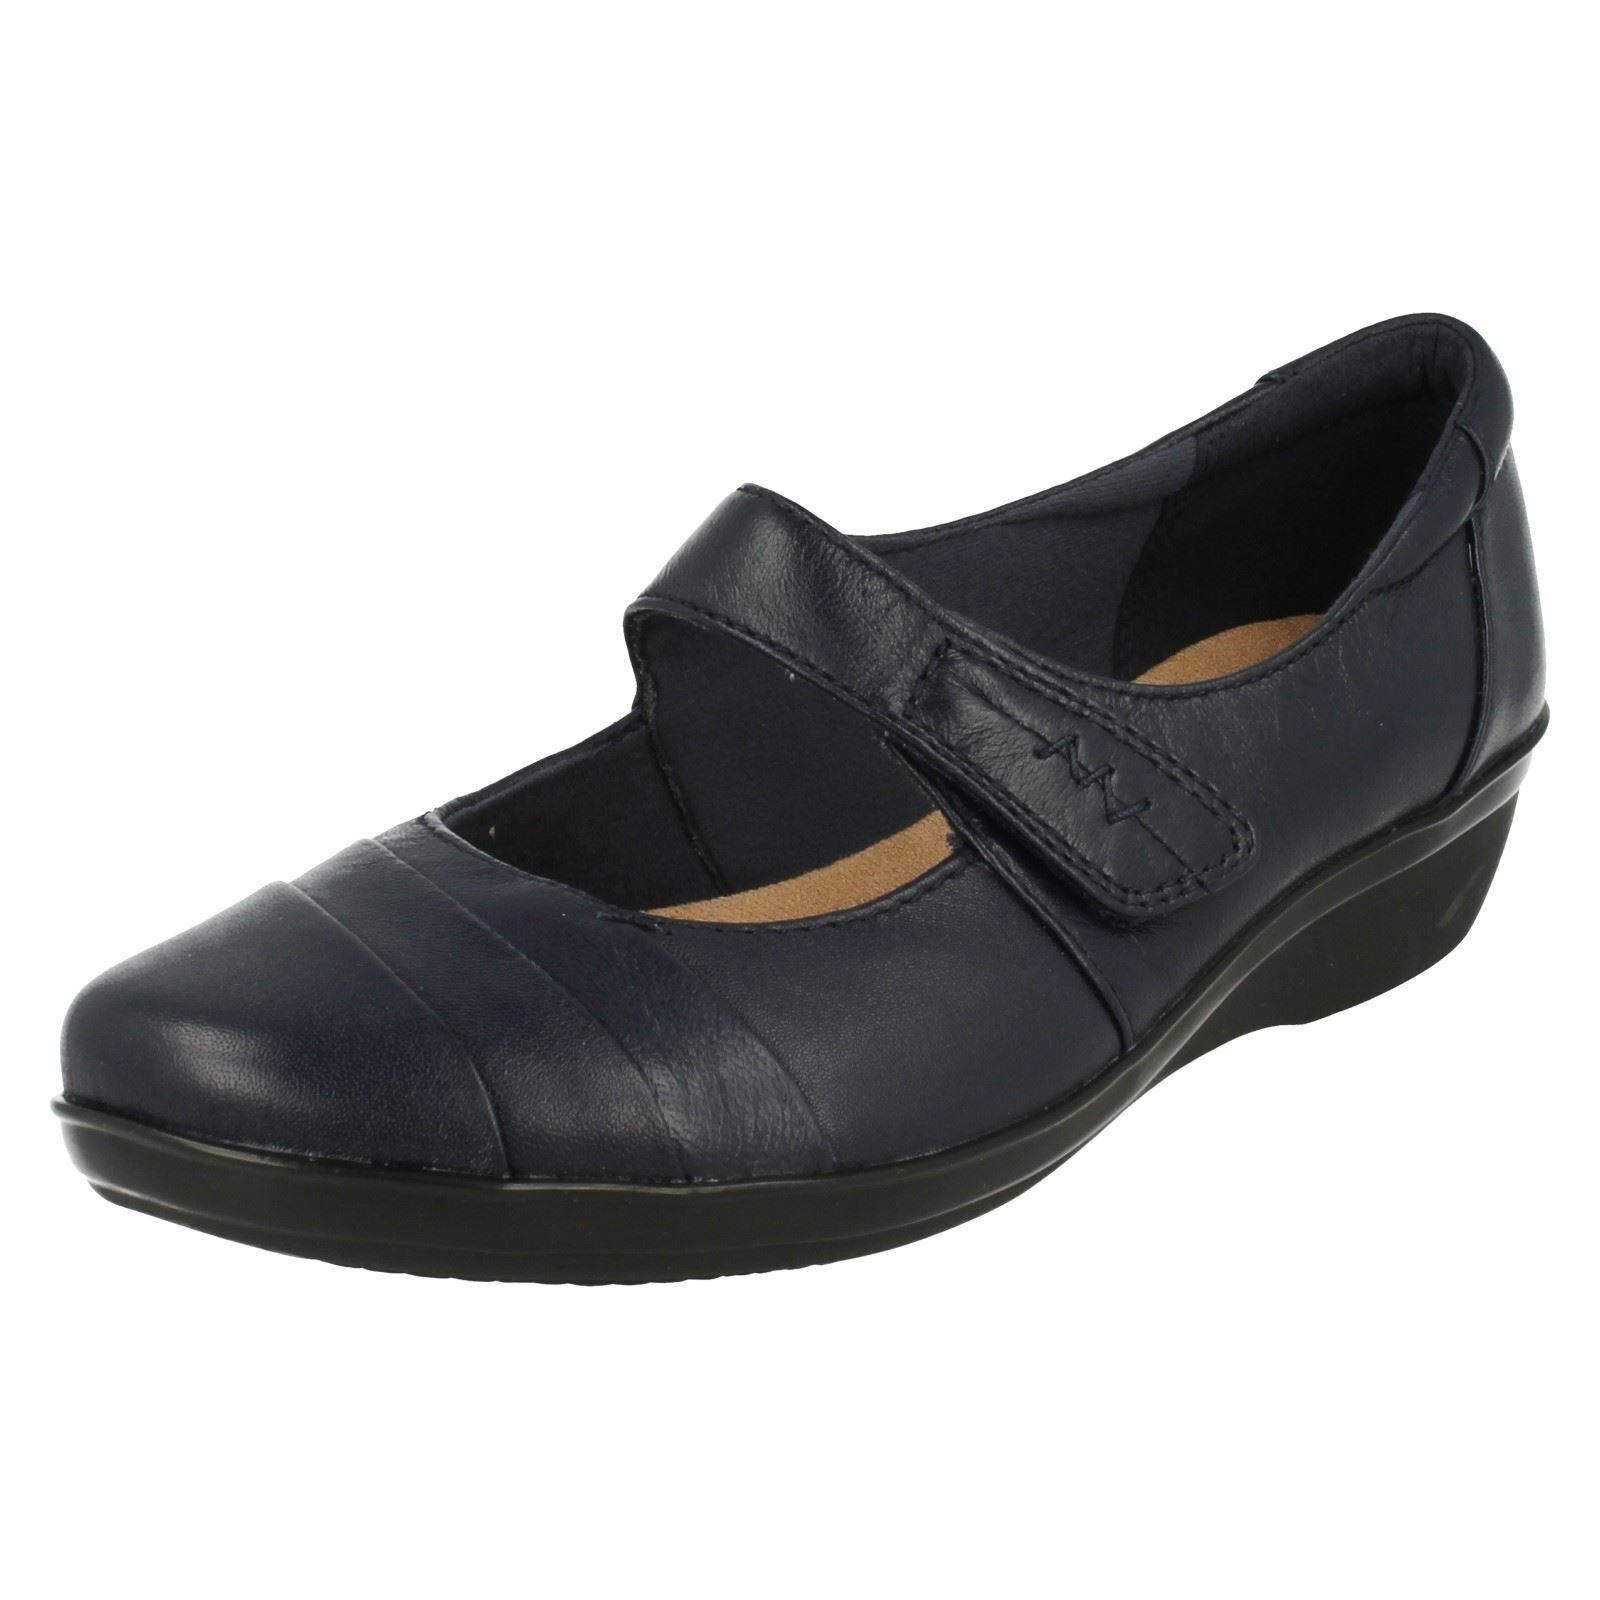 Clarks Everlay Kennon Ladies Navy shoes E Fit (R17A)